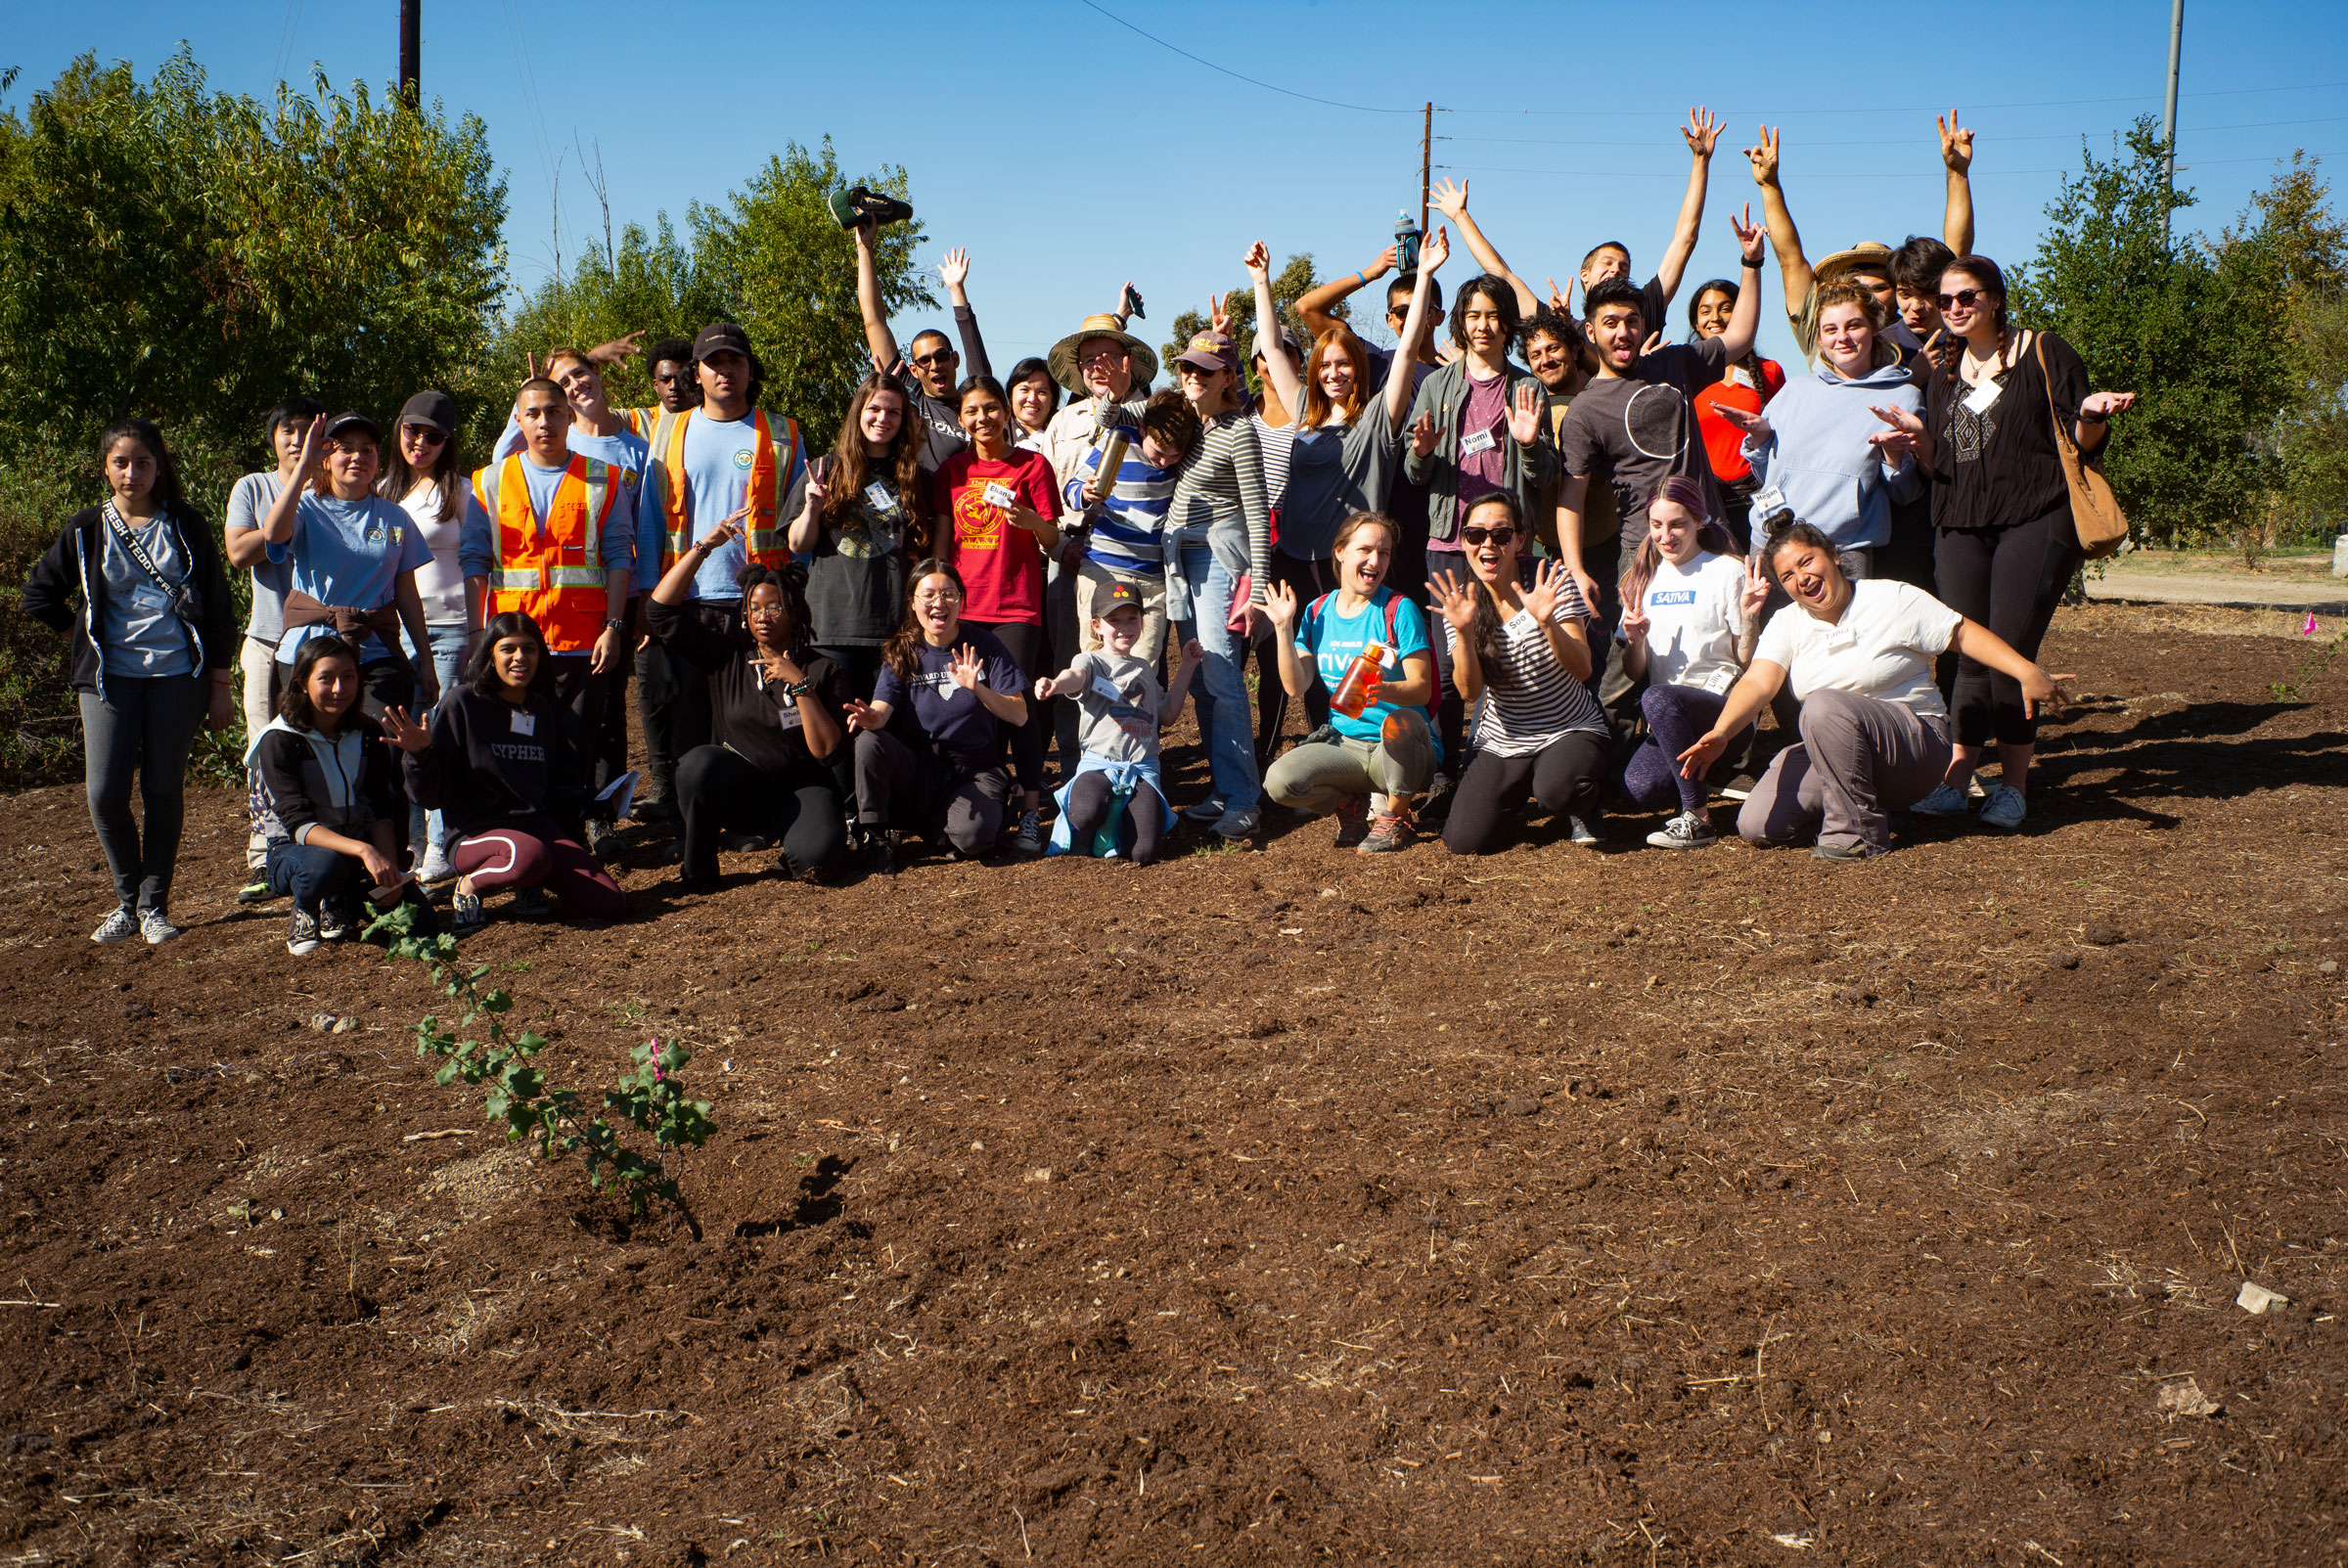 Tania Romero, program coordinator at Audubon Center at Debs Park, bottom right, takes a celebratory picture with students after a successful community habitat enhancement work day at Rio de Los Angeles State Park. Courtesy of Tania Romero